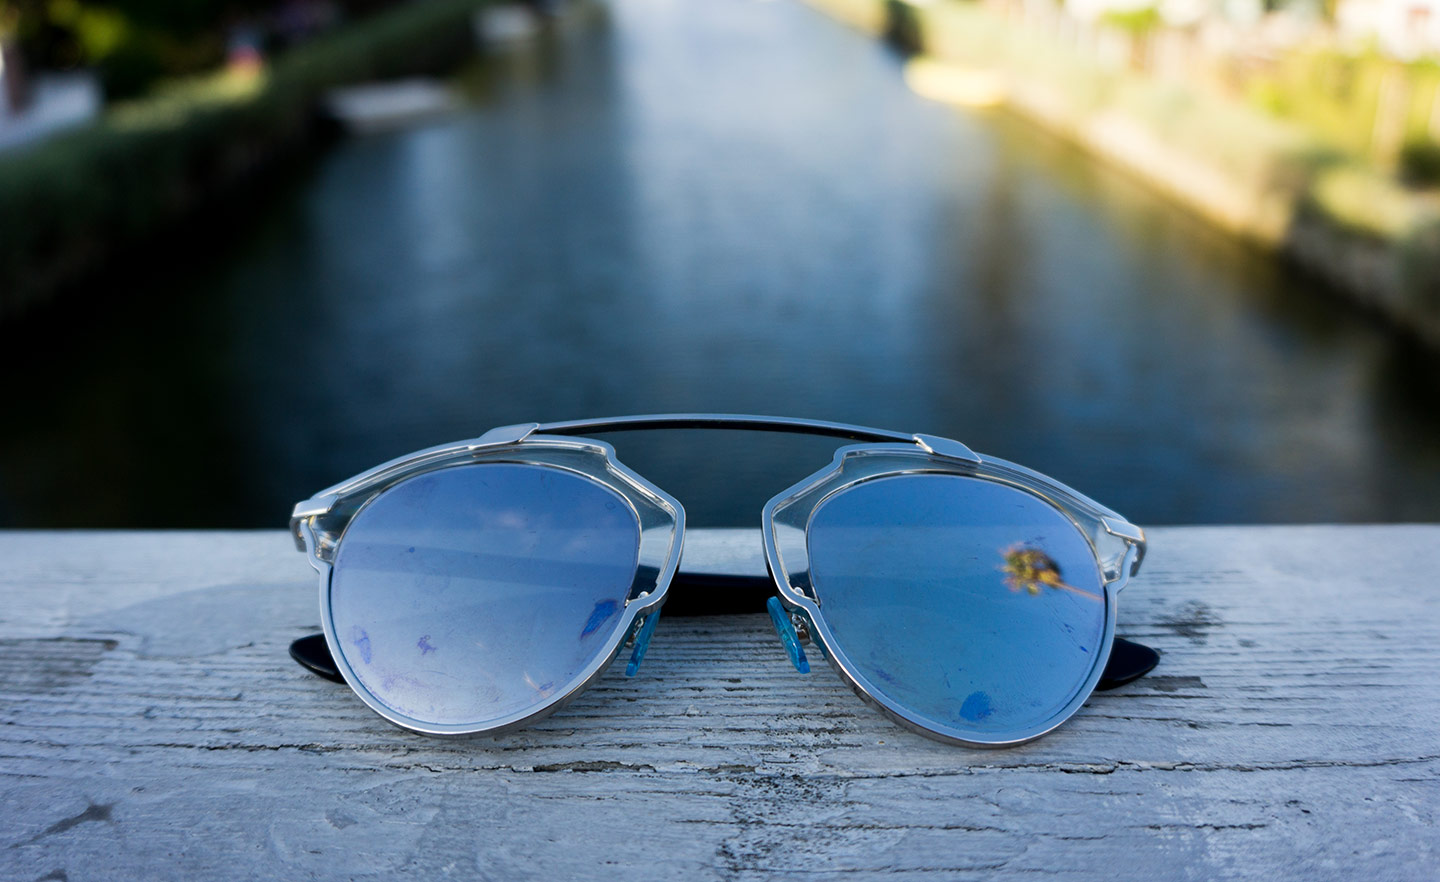 sunglasses on the canal